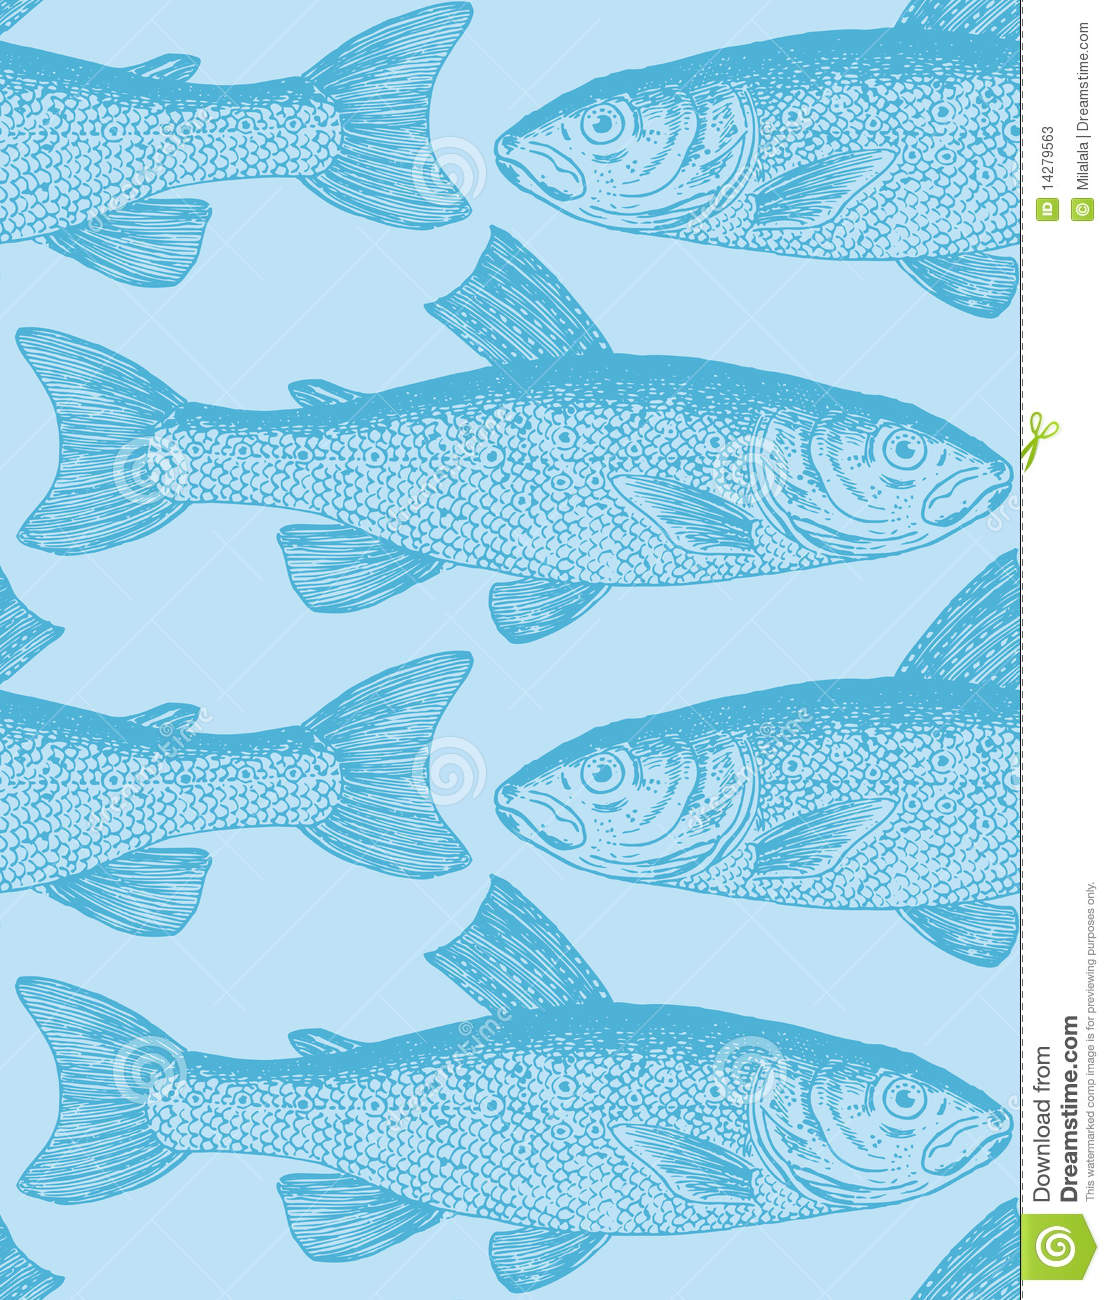 Seamless vintage fish pattern (vector)